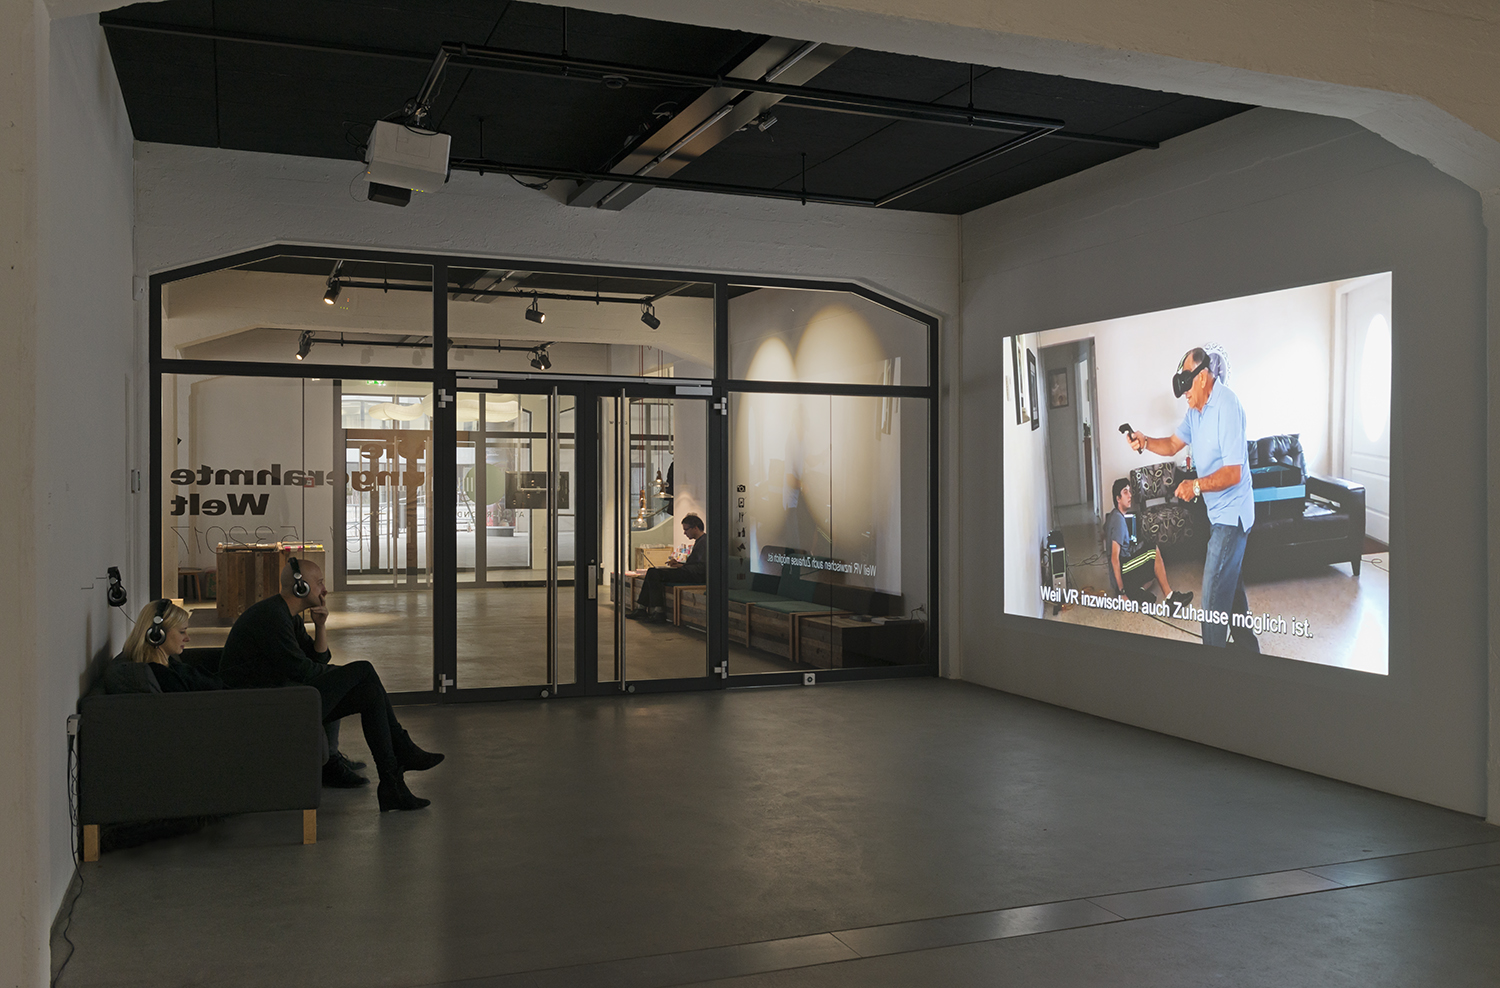 Exhibition view THE UNFRAMED WORLD at HeK Basel / Kindly Keyin, The Story of VR - A Look at the History Behind, 2016 (Video) / Photo by Franz Wamhof